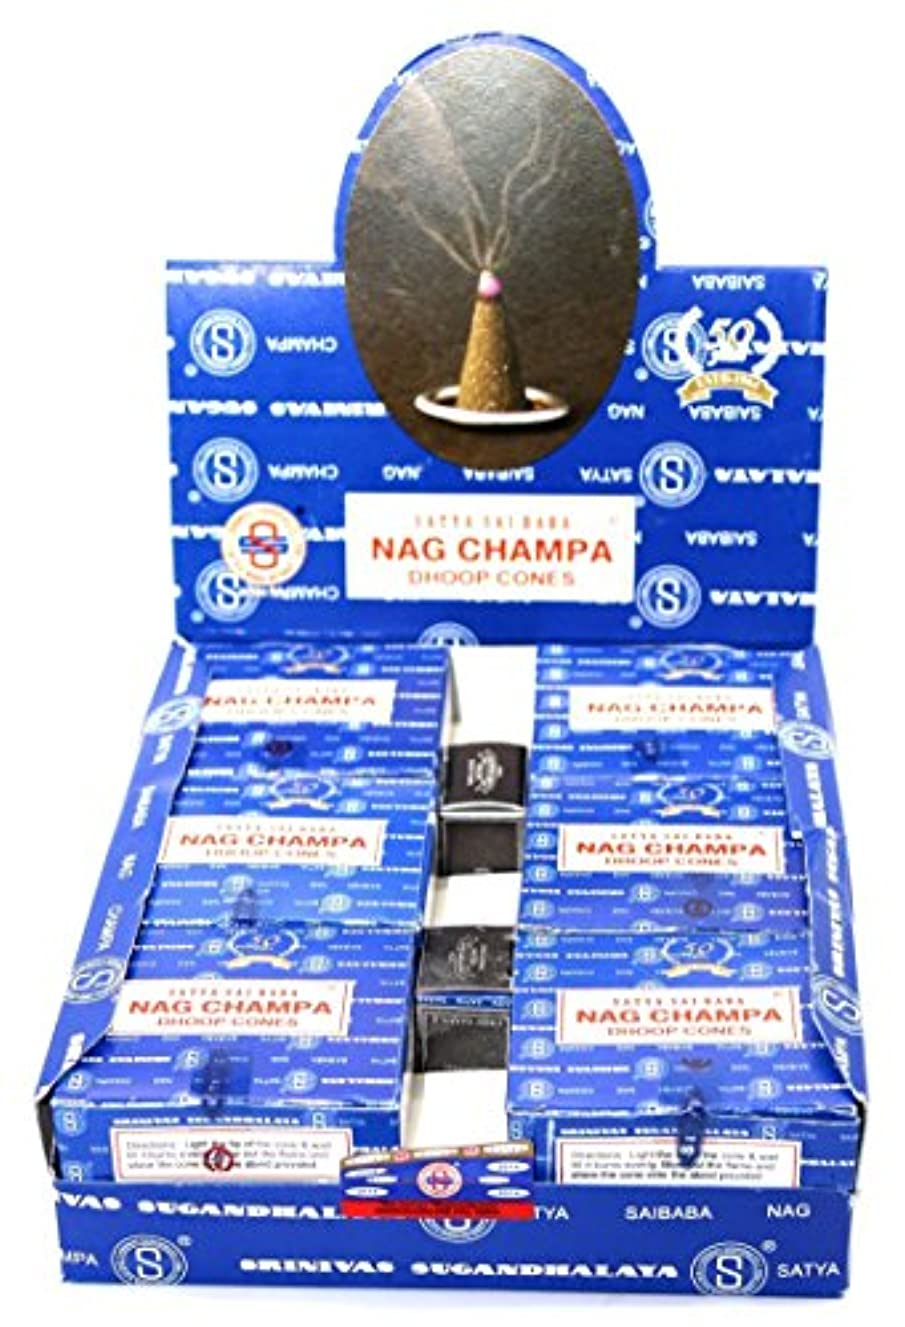 違法仮定シンカンNag Champa Satya Sai Baba Temple Incense Cones Carton, 12 Box by Nag Champa [並行輸入品]